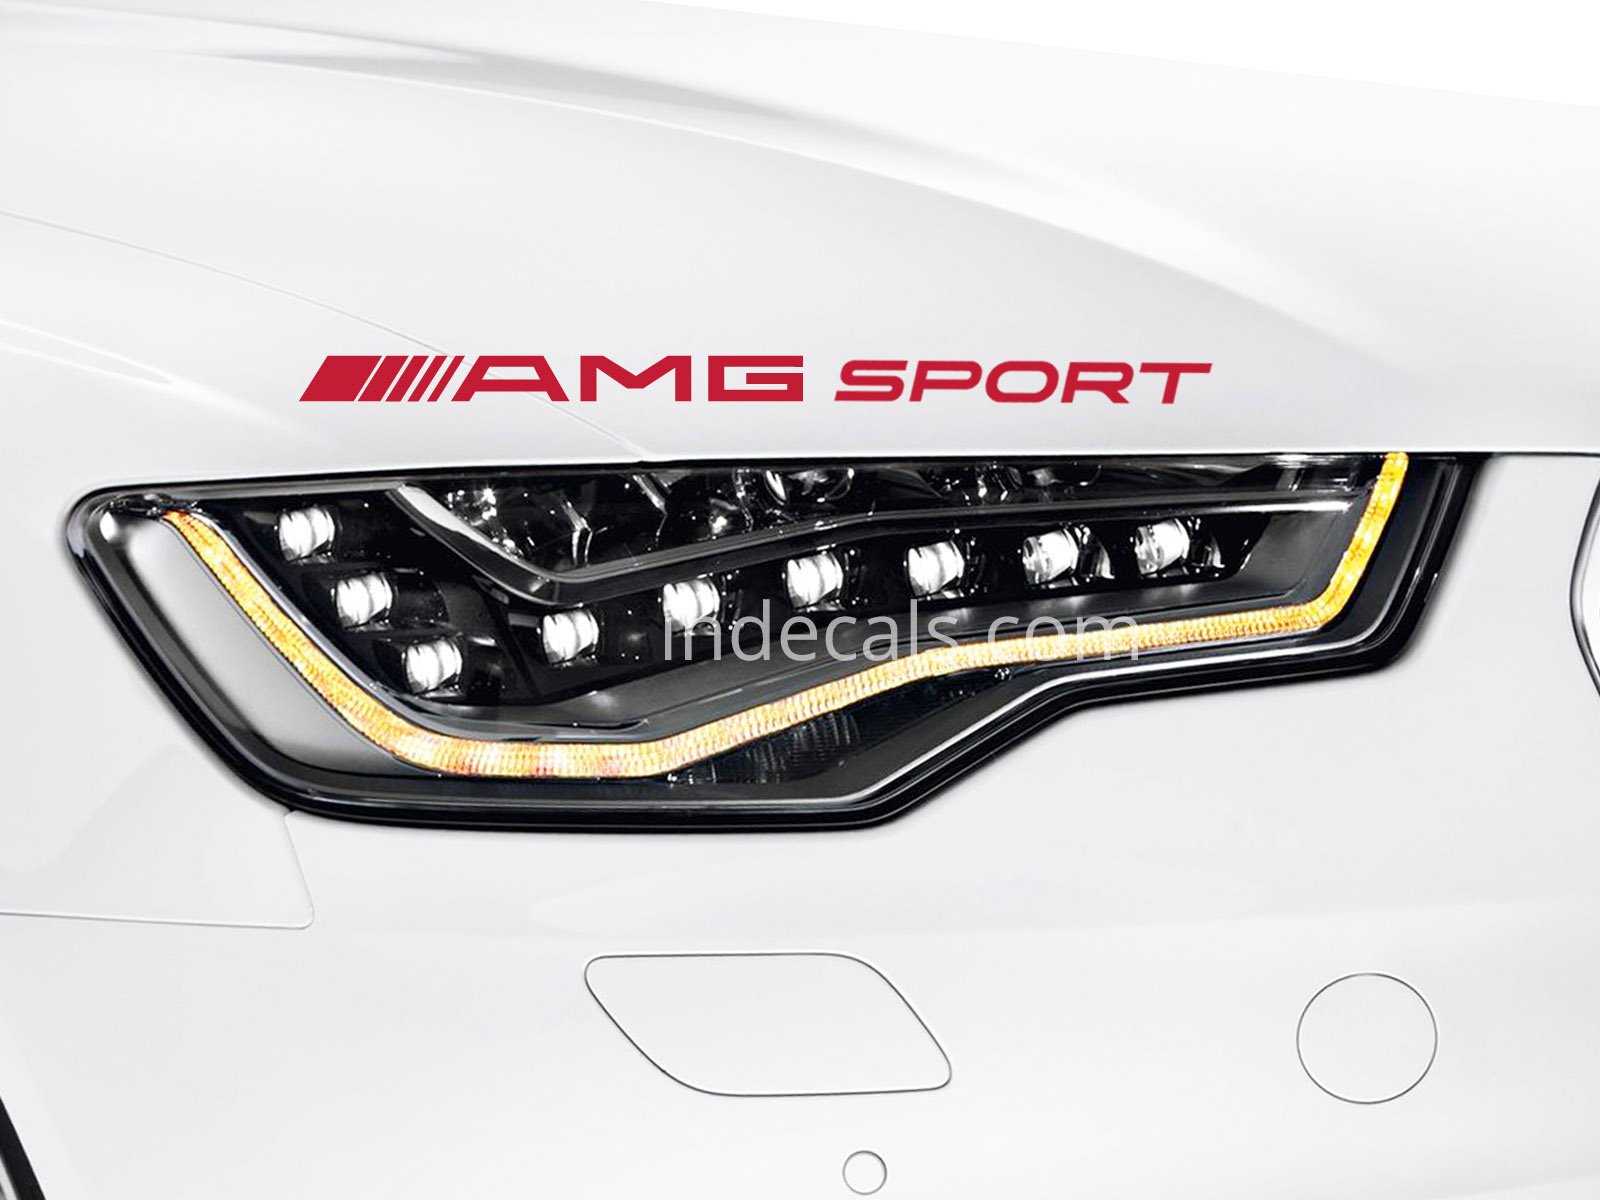 1 x AMG Sport Sticker - Red